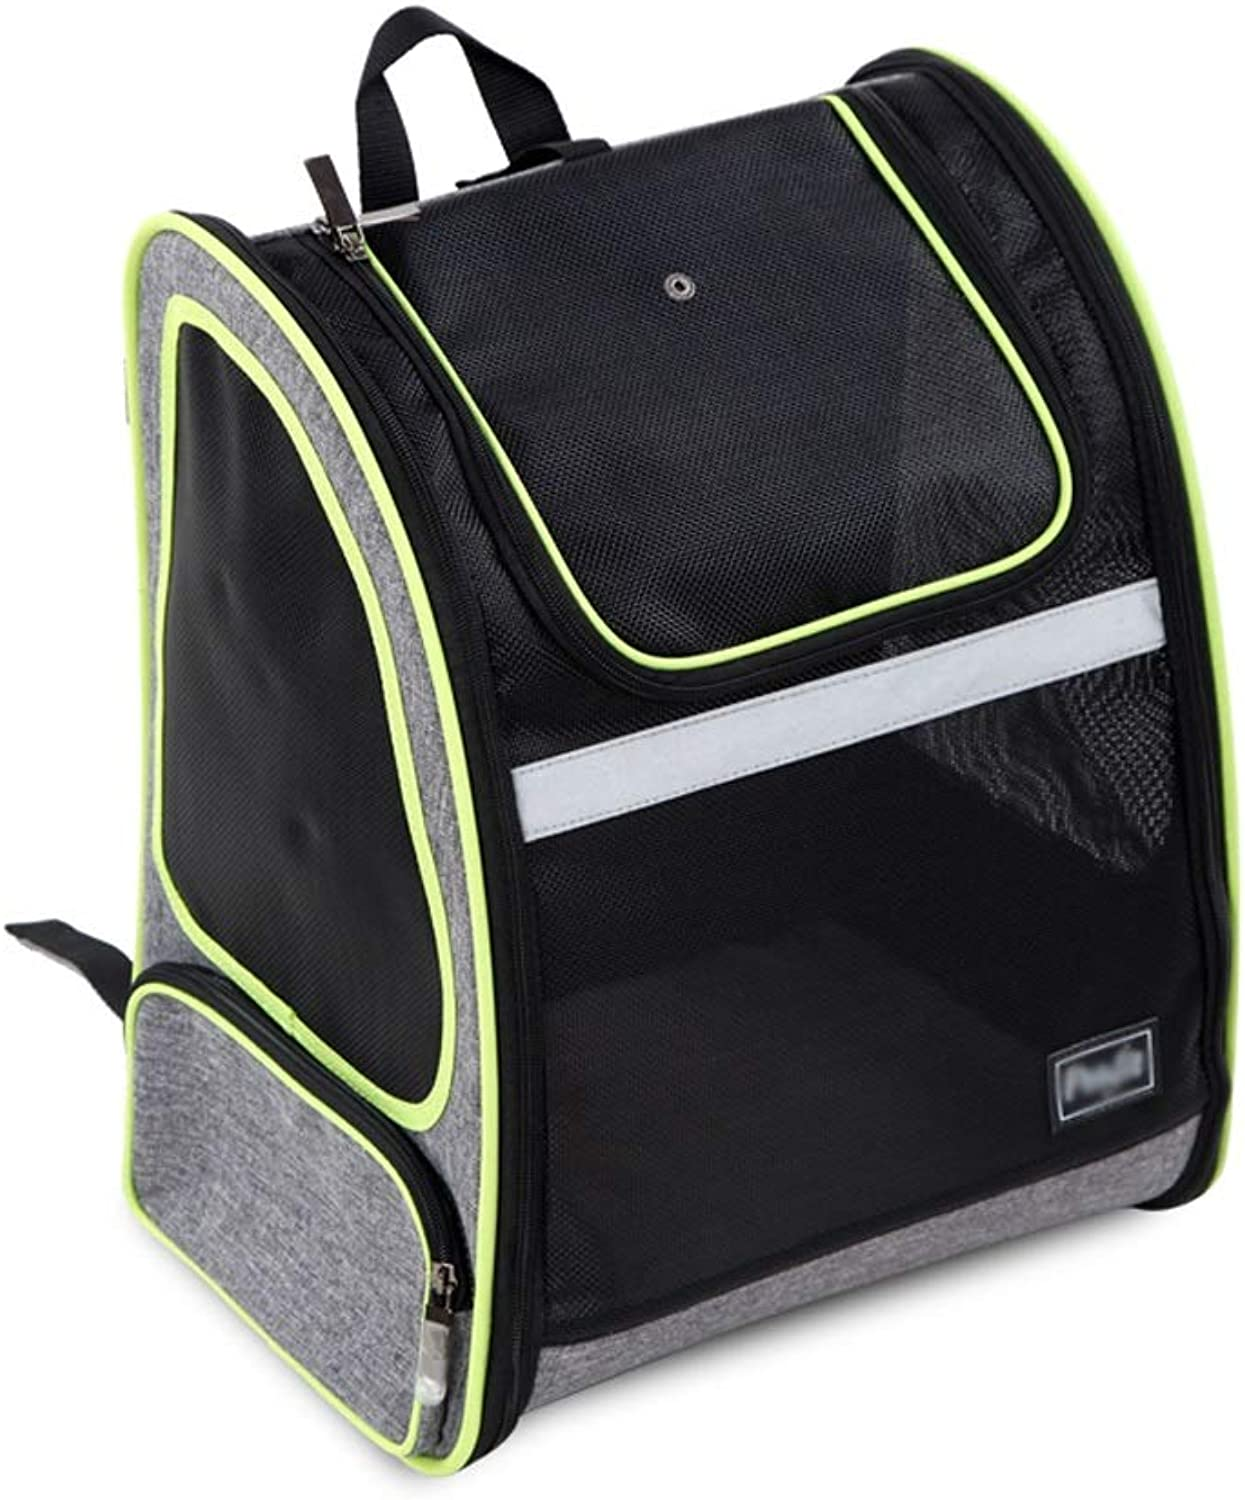 CL Pet Bag Out Portable Full Mesh Breathable Pet Backpack, 330X260X420mm Pet Bag